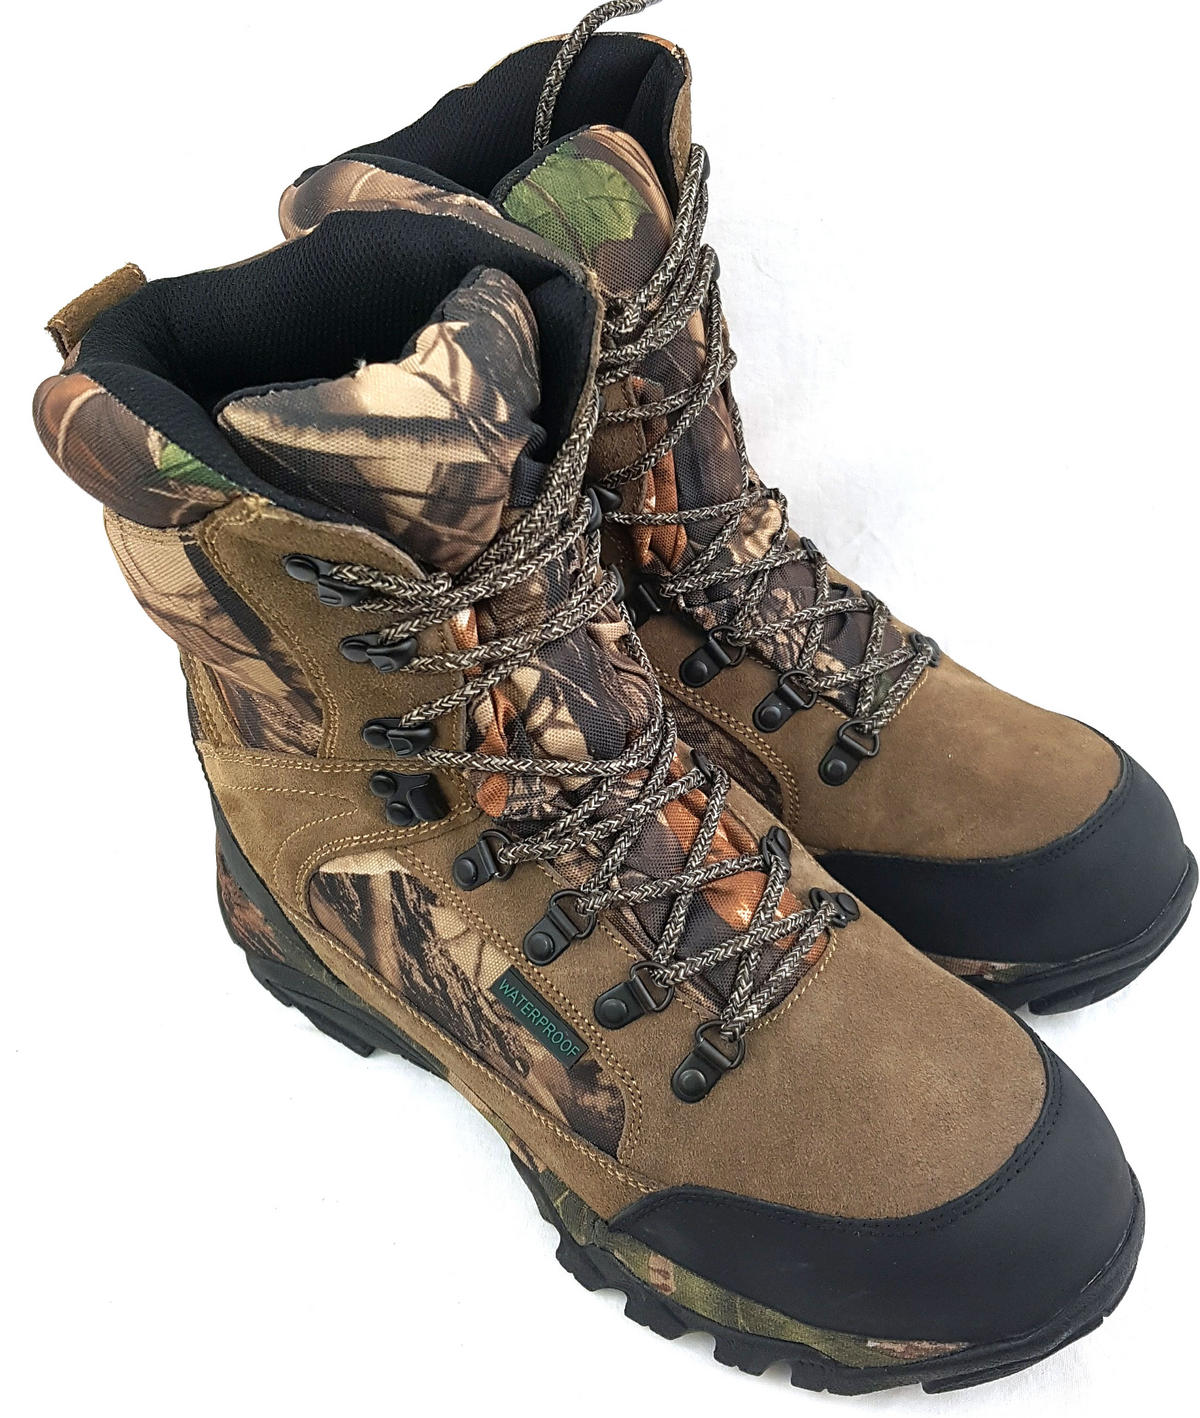 BISON SUEDE LEATHER CAMO WATERPROOF BOOTS